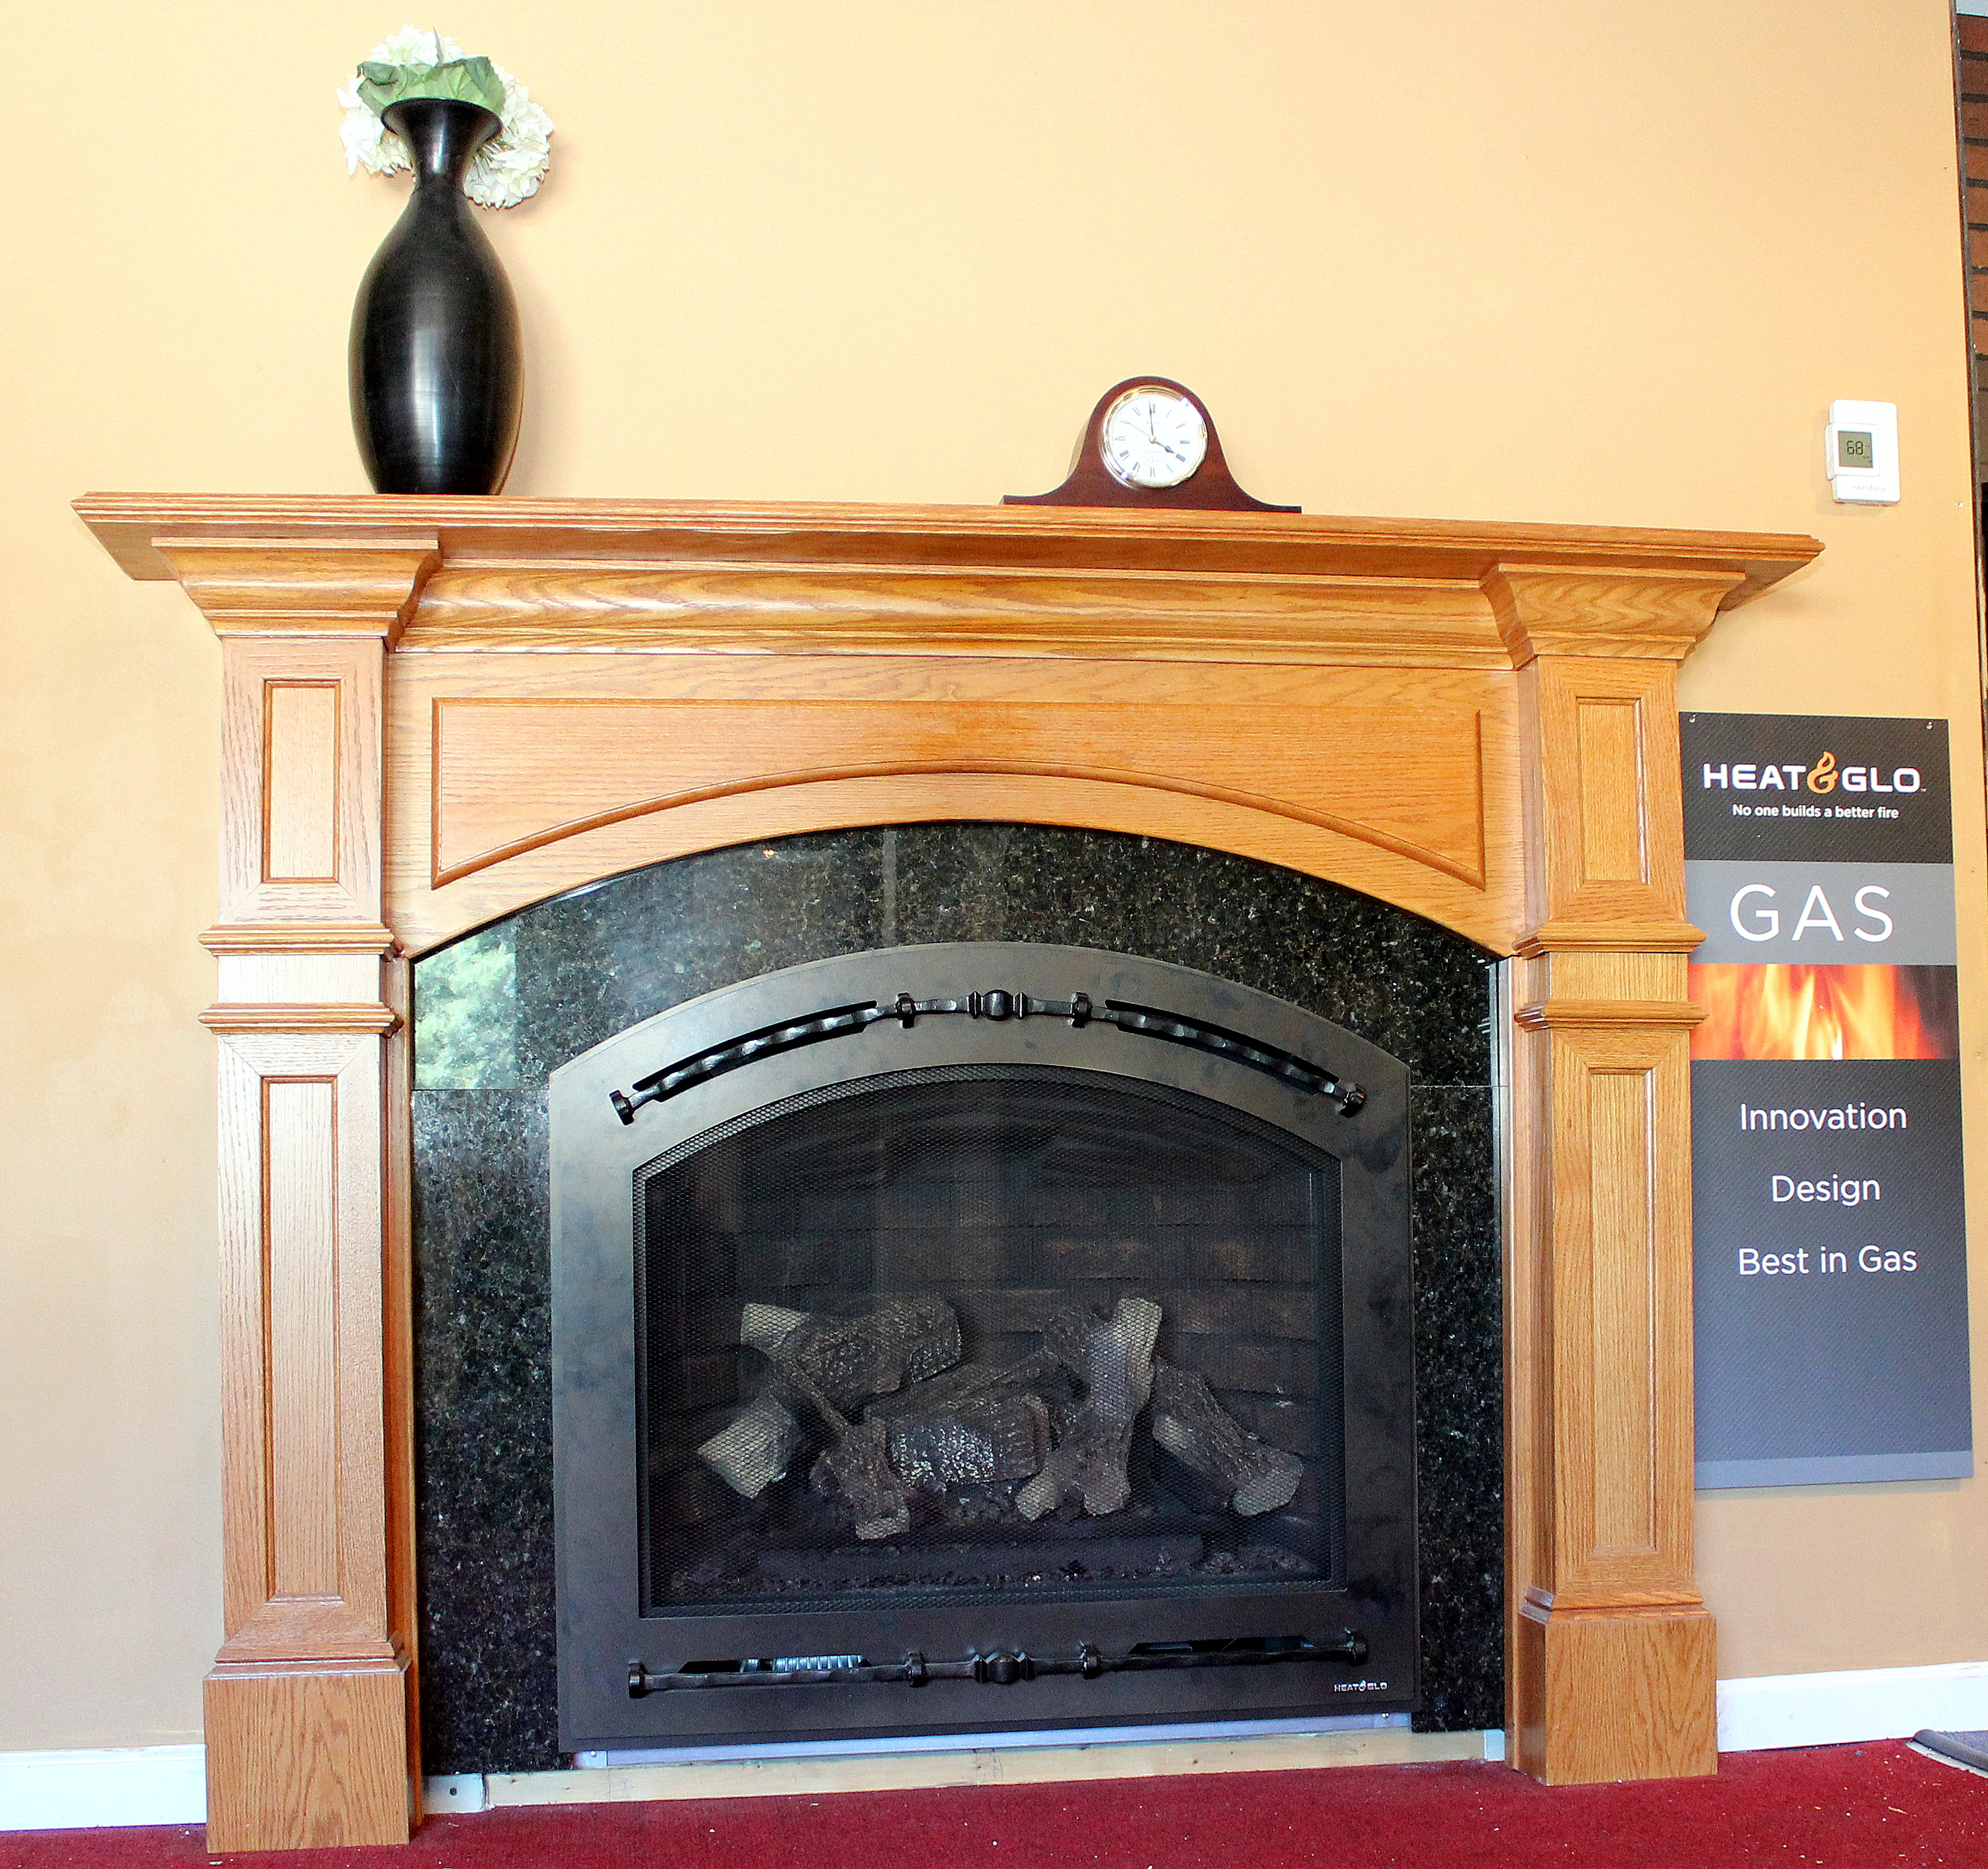 Fireside living bedford fireside living nh for Gas fireplace maintenance do it yourself